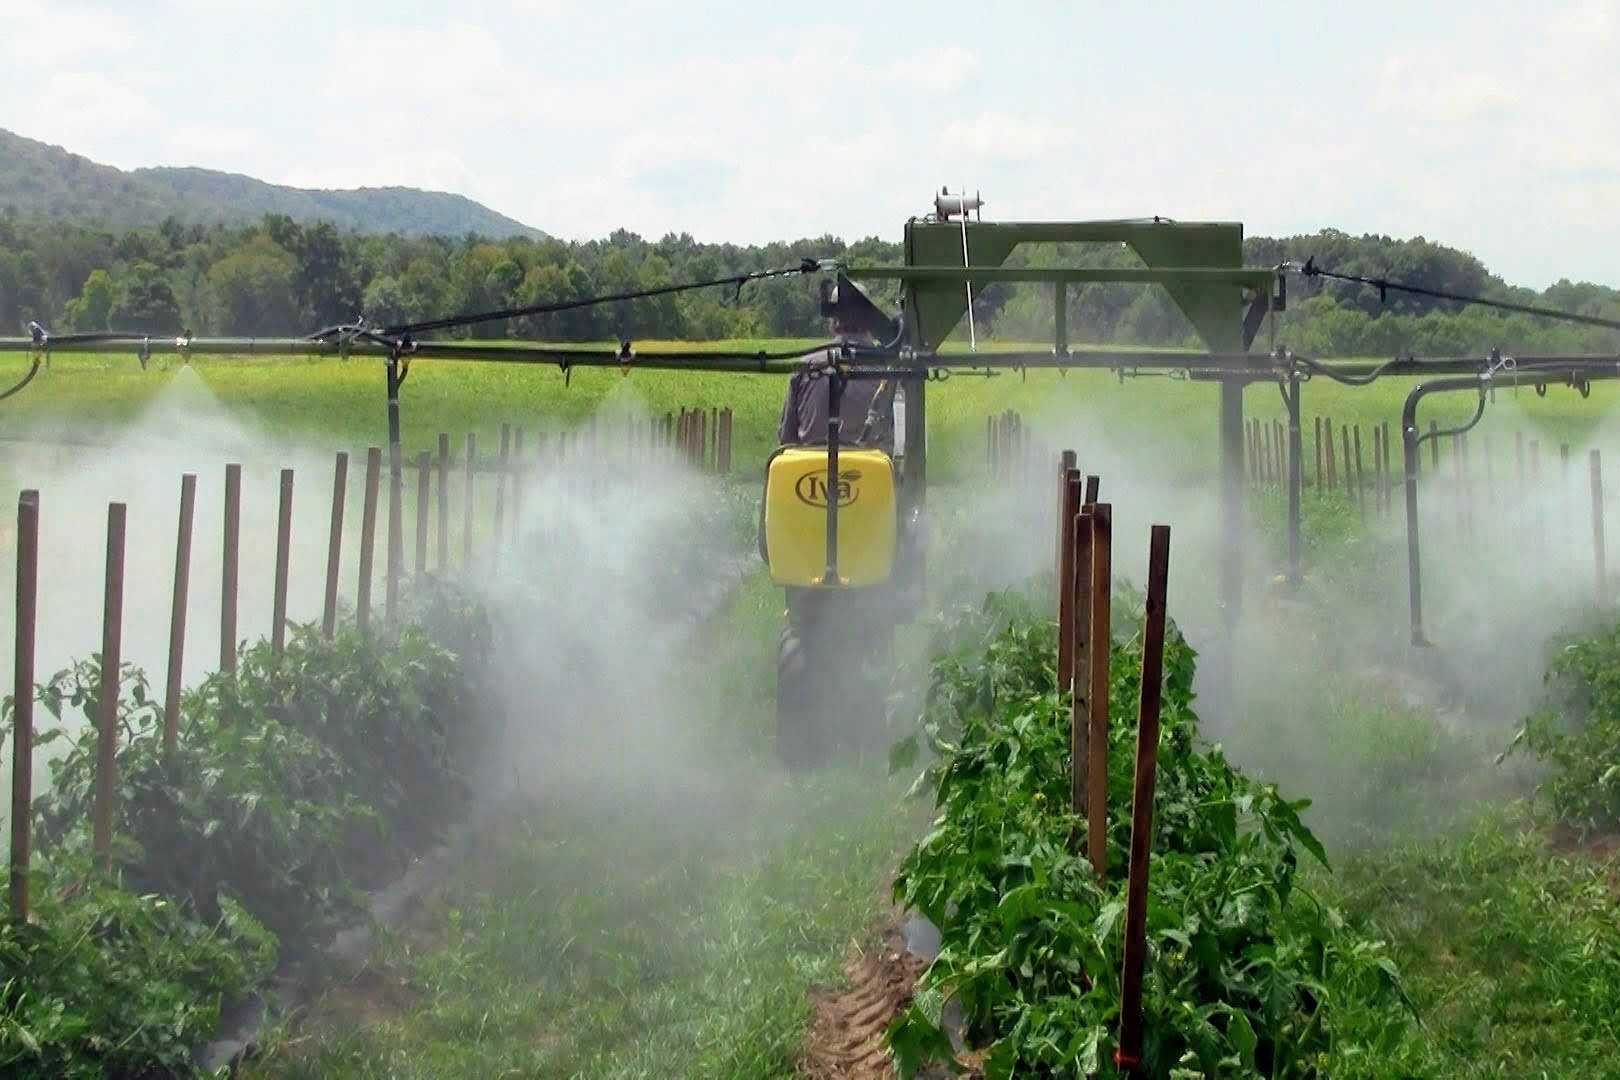 spraying tomatoes with SP50 sprayer from Iva Sprayers